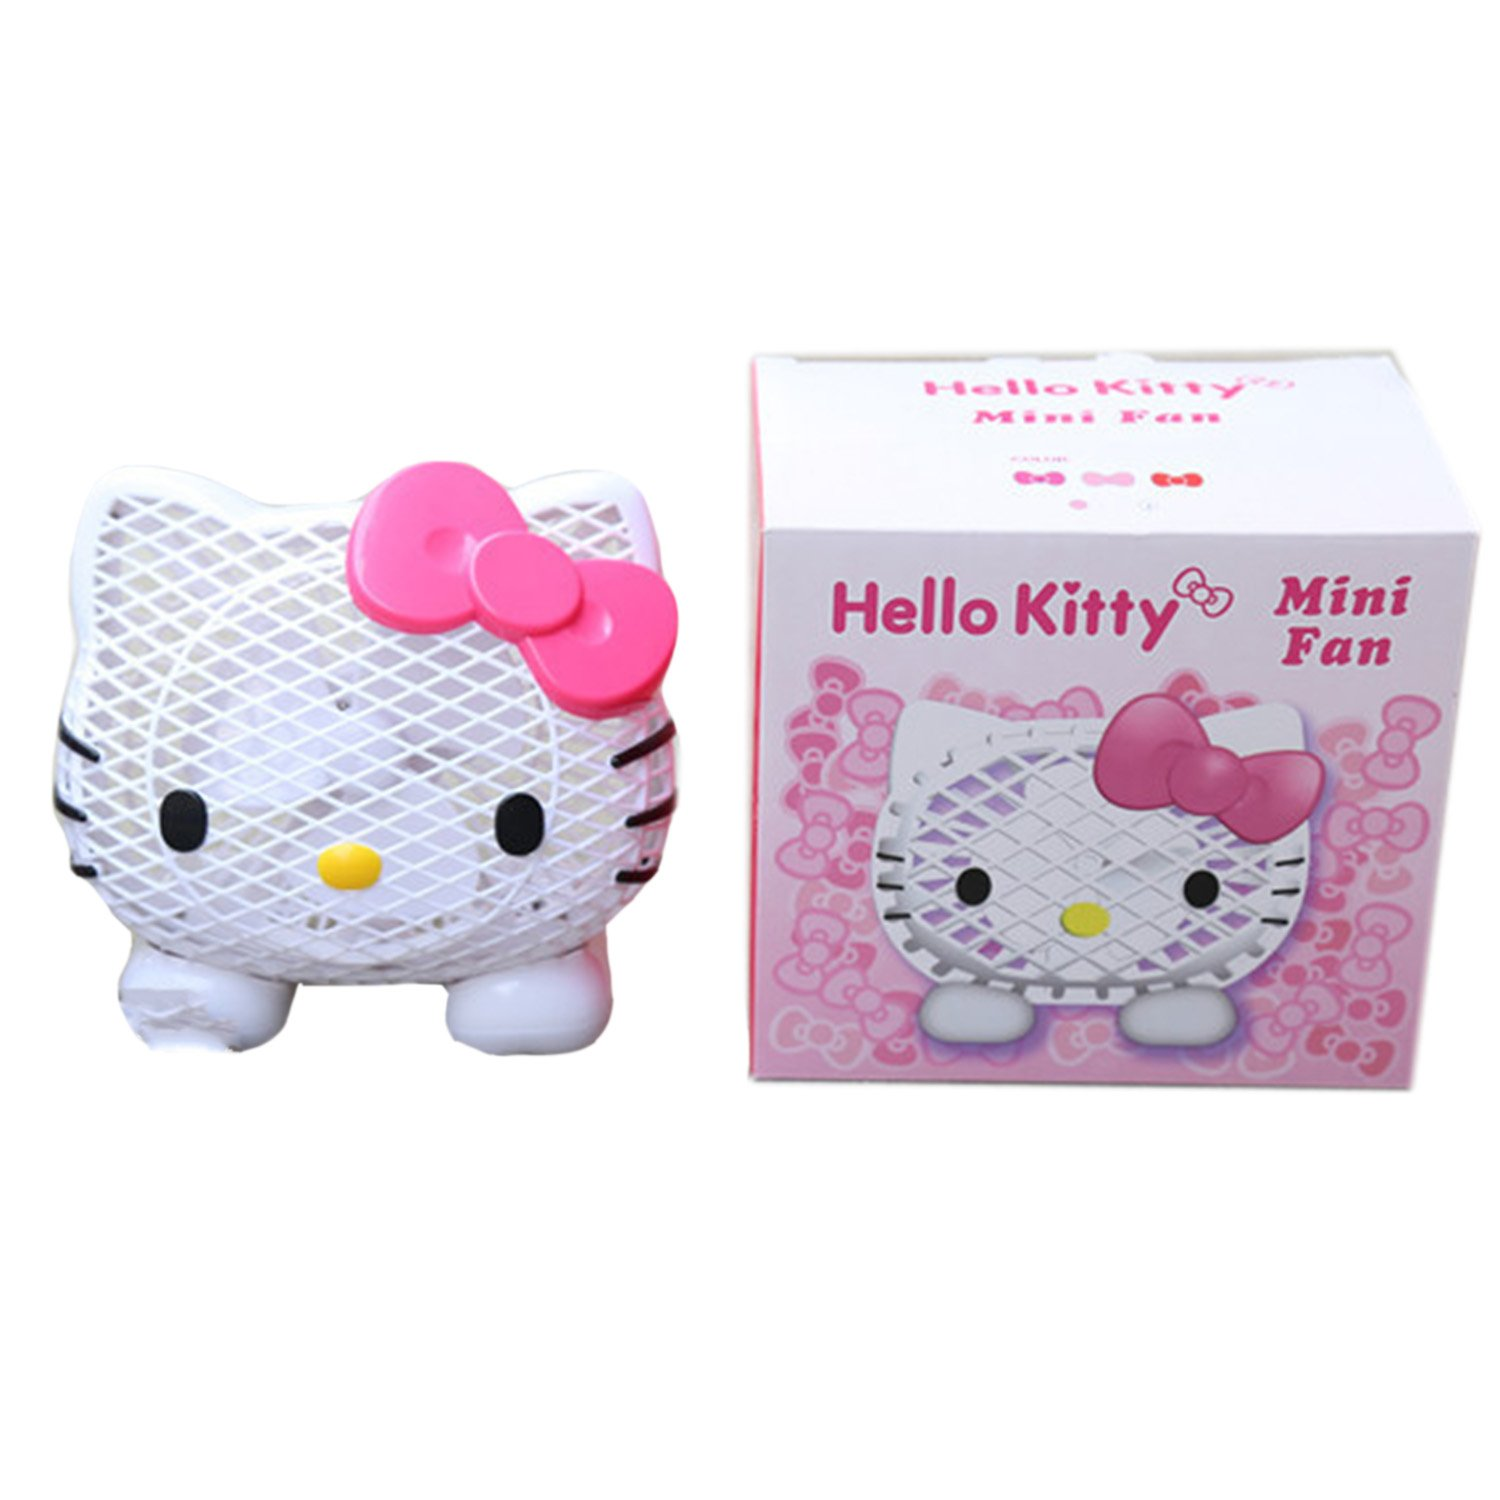 Topfly Adjustable Mini USB Fan Hello Kitty Air Cooling Cooler for Office Home Indoor Rose1